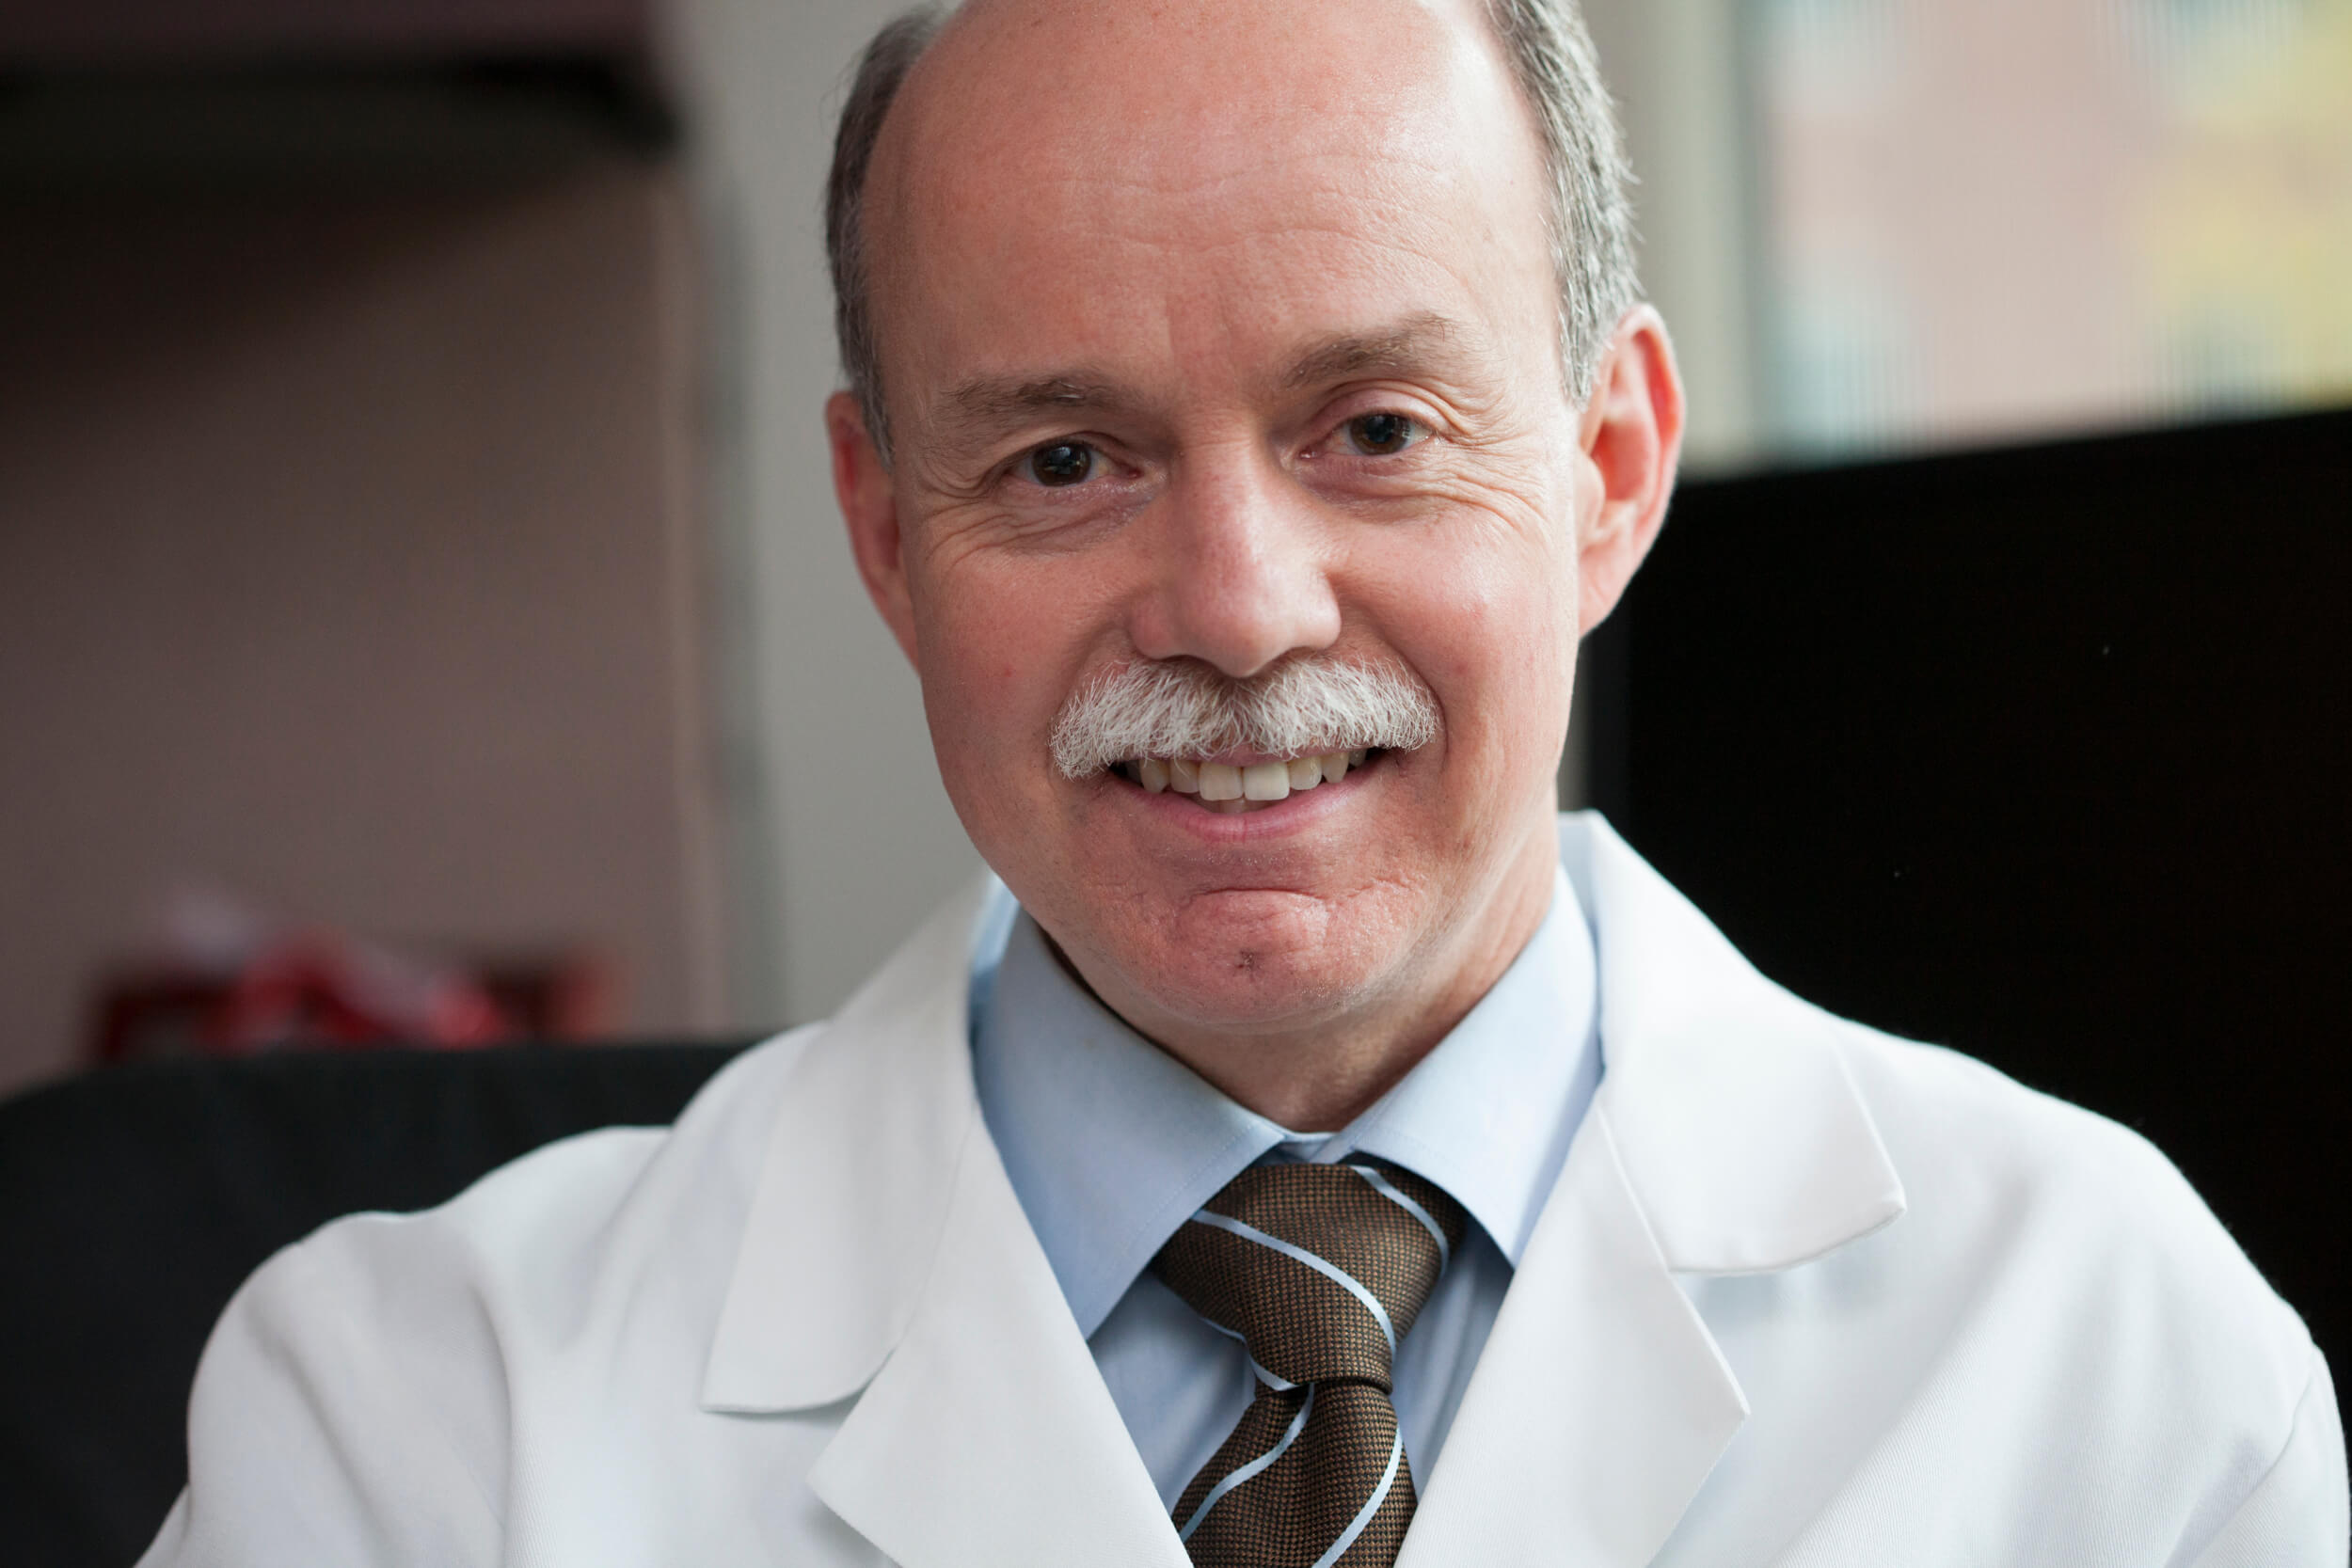 Theodore DeWeese, M.D., Director and Kimmel Professor of Radiation Oncology and Molecular Radiation Sciences - 33D890156432BC712E8AE46EE526E075